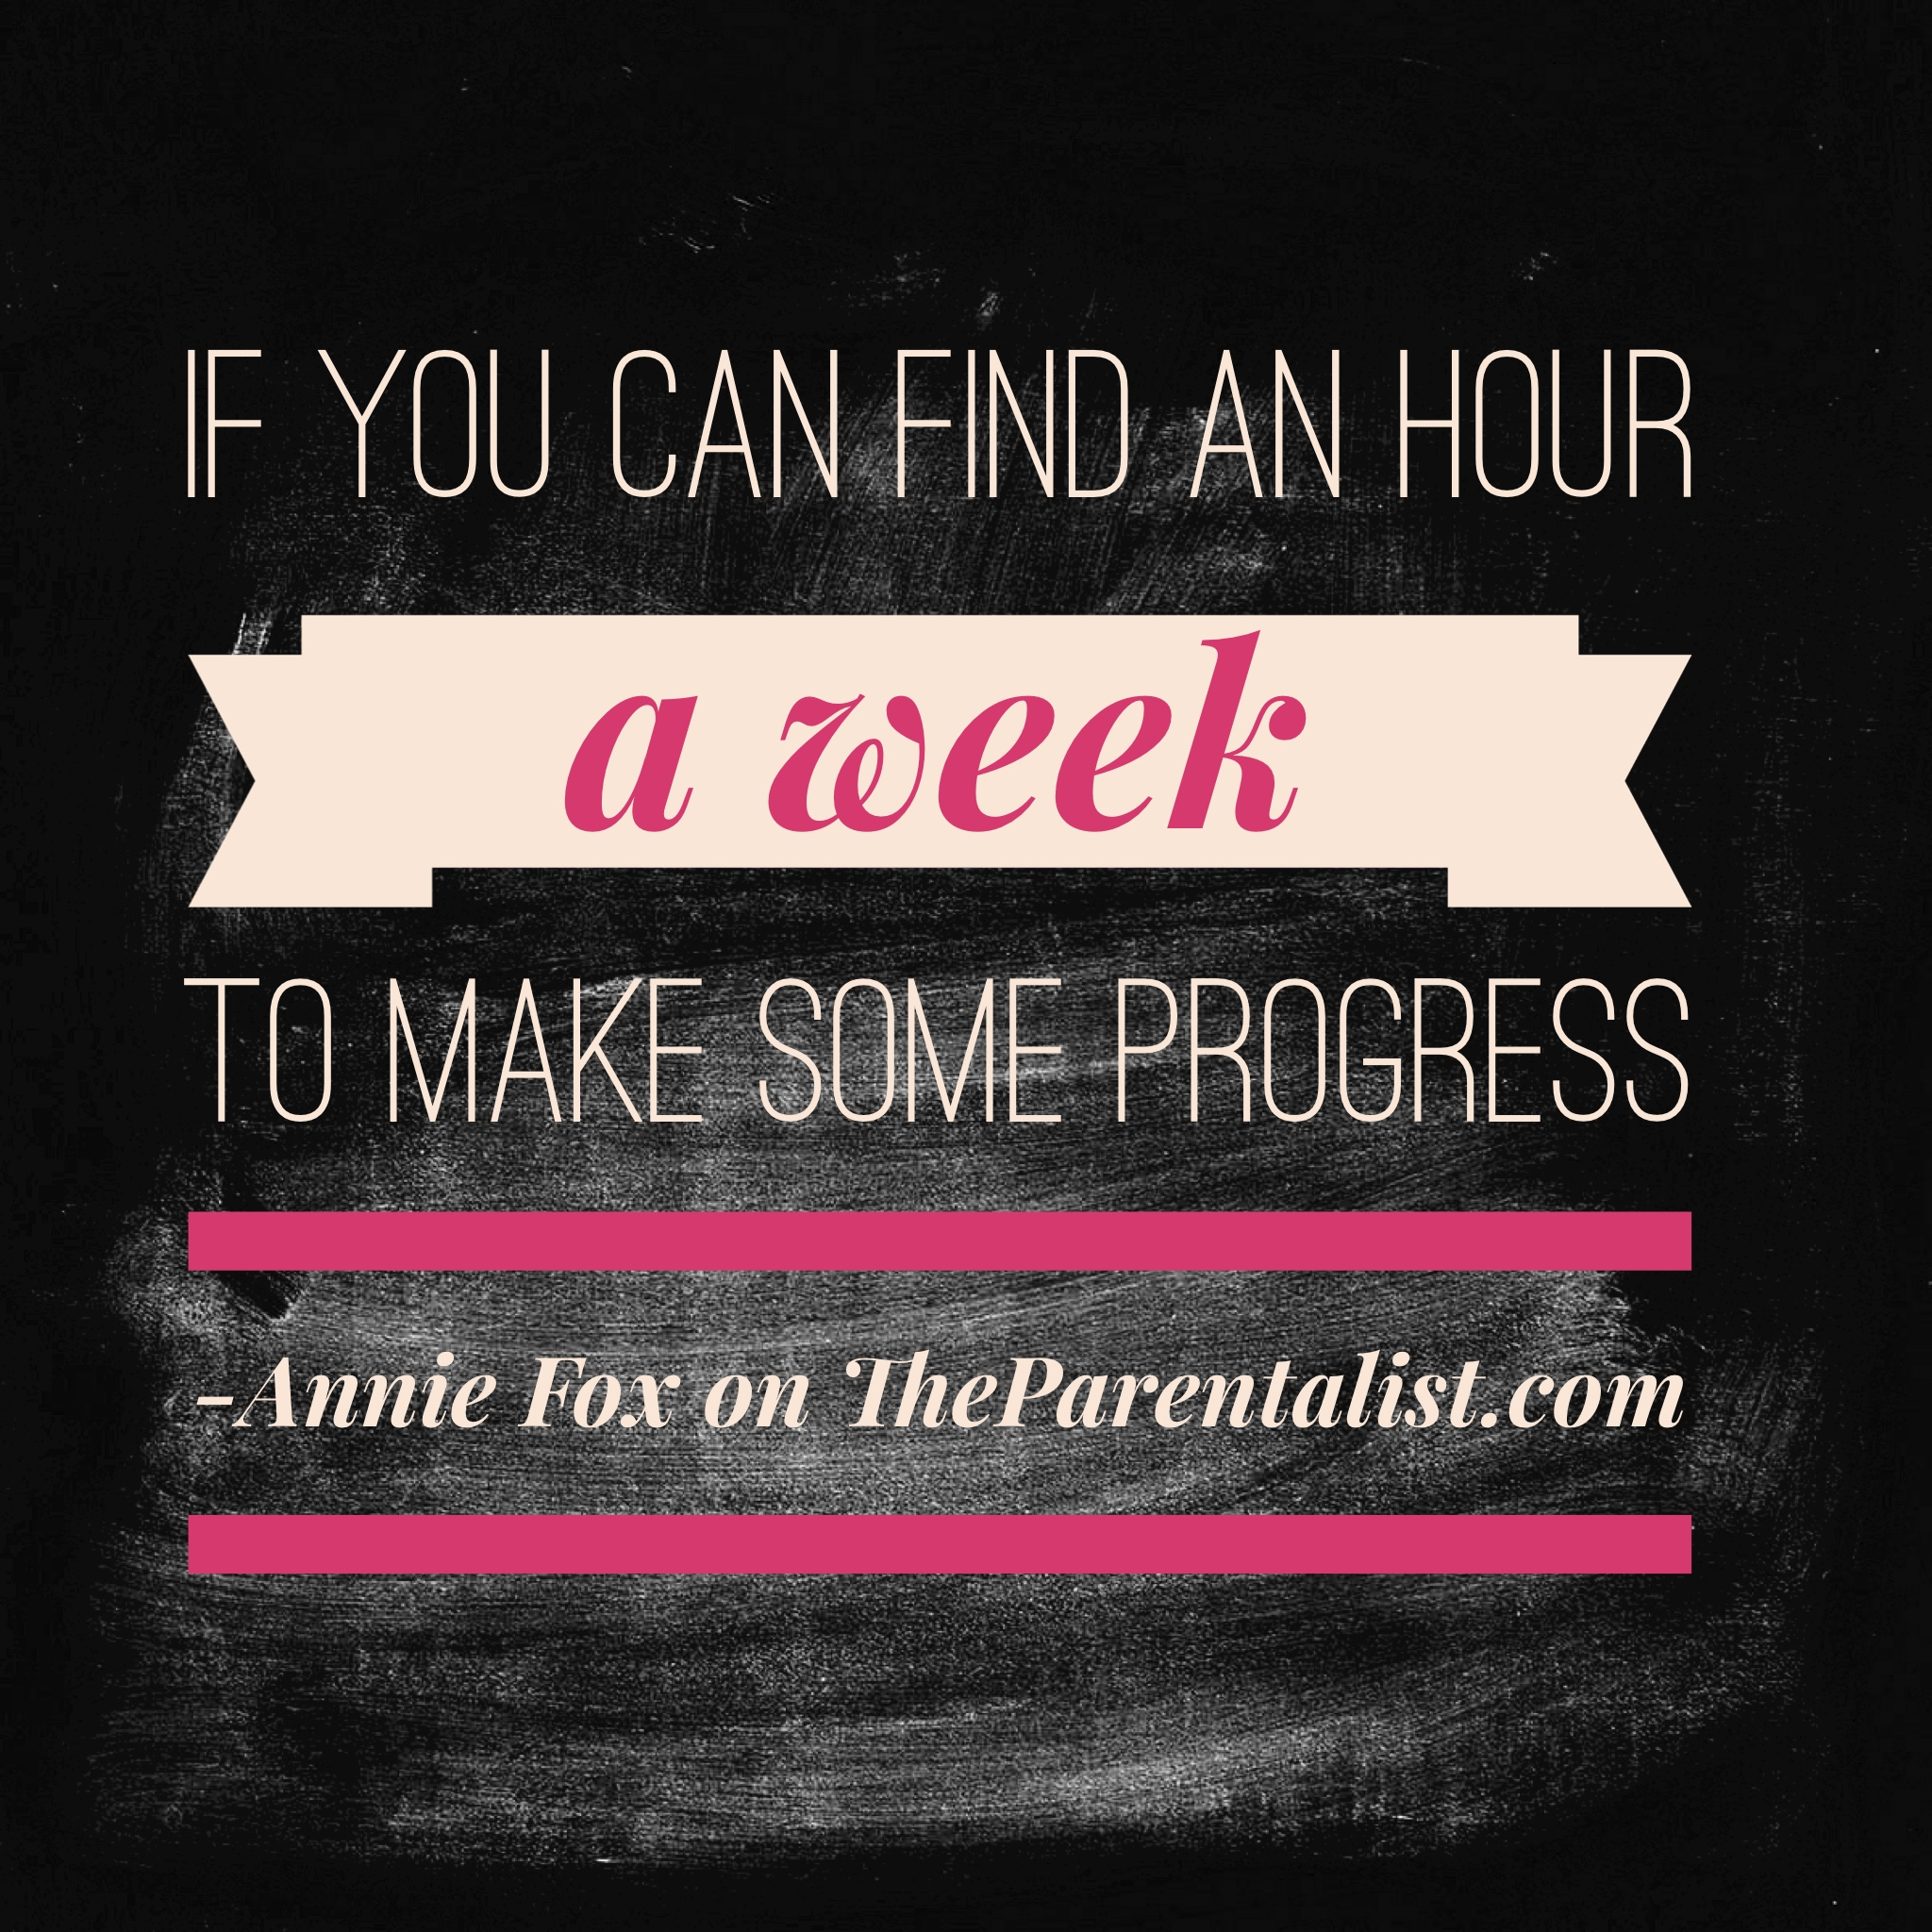 Productivity: Find An Hour a Week